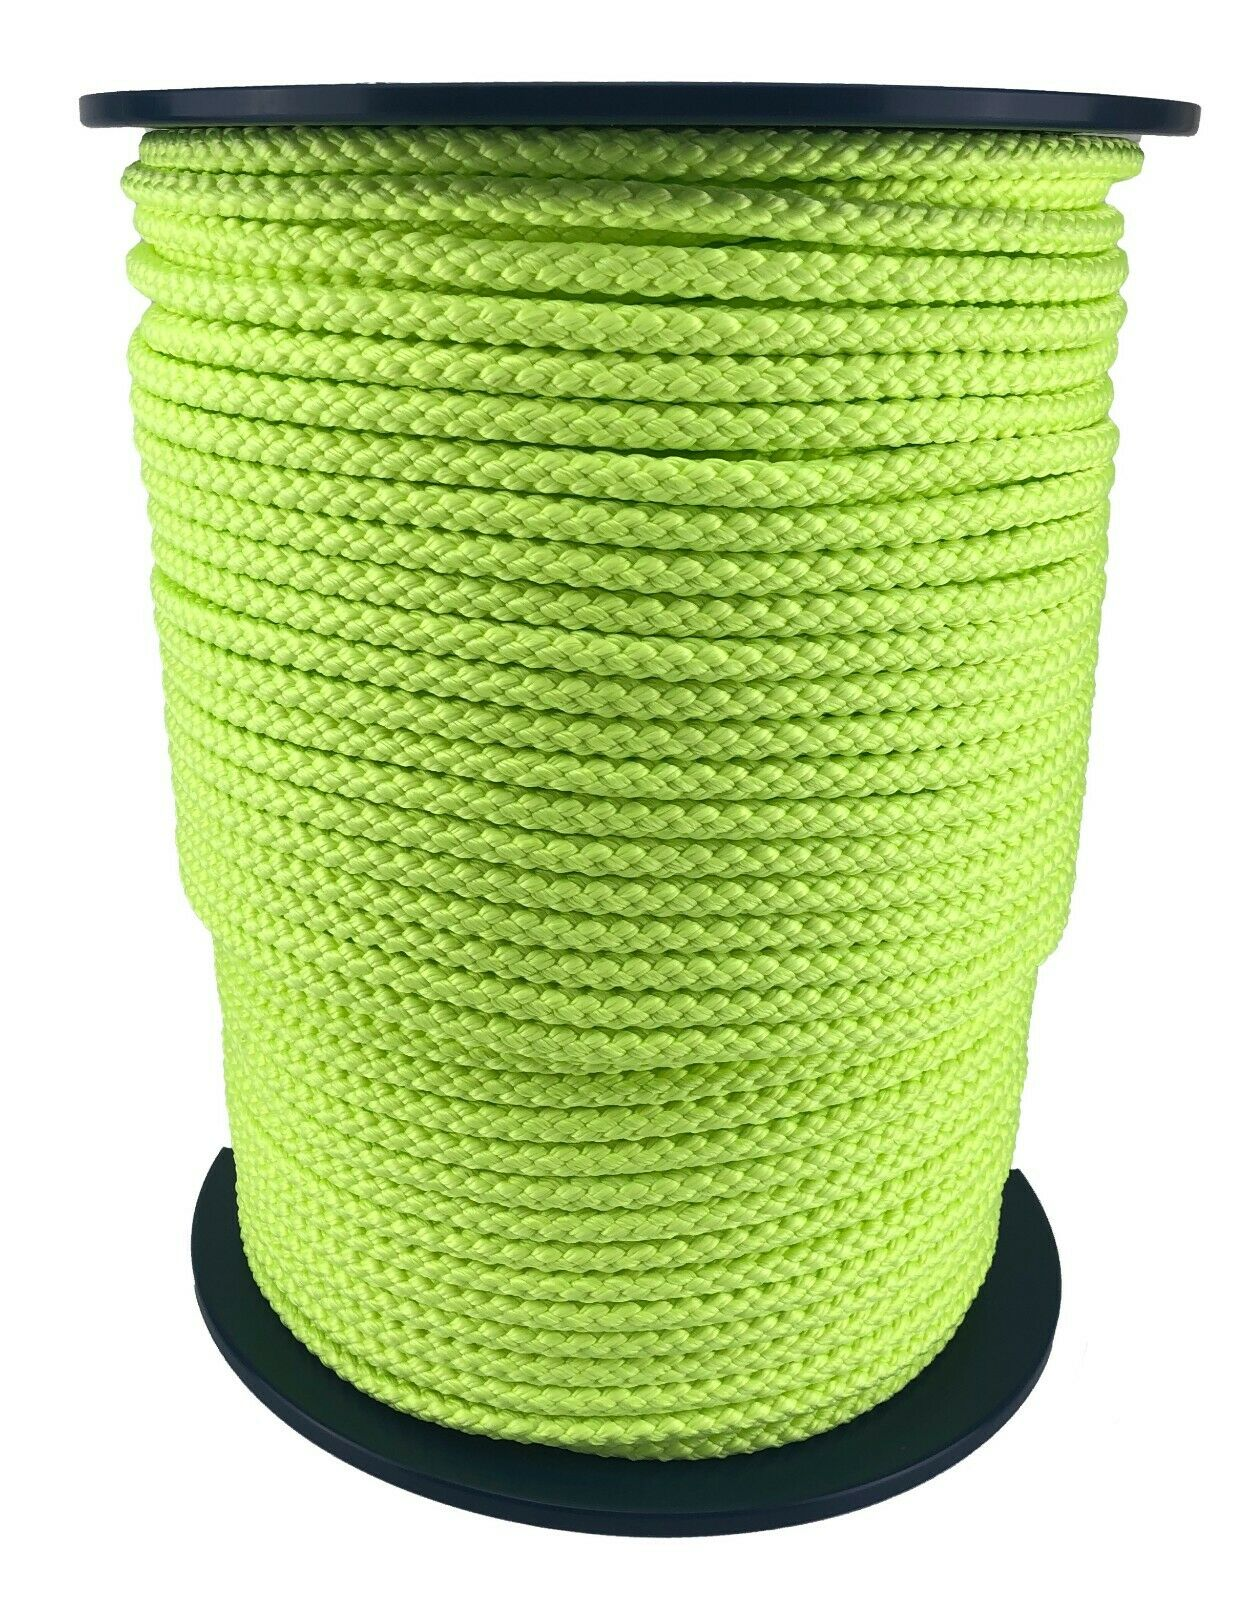 12mm Fluorescent Yellow Braided Polypropylene Rope x 45m Paracord Drawstring